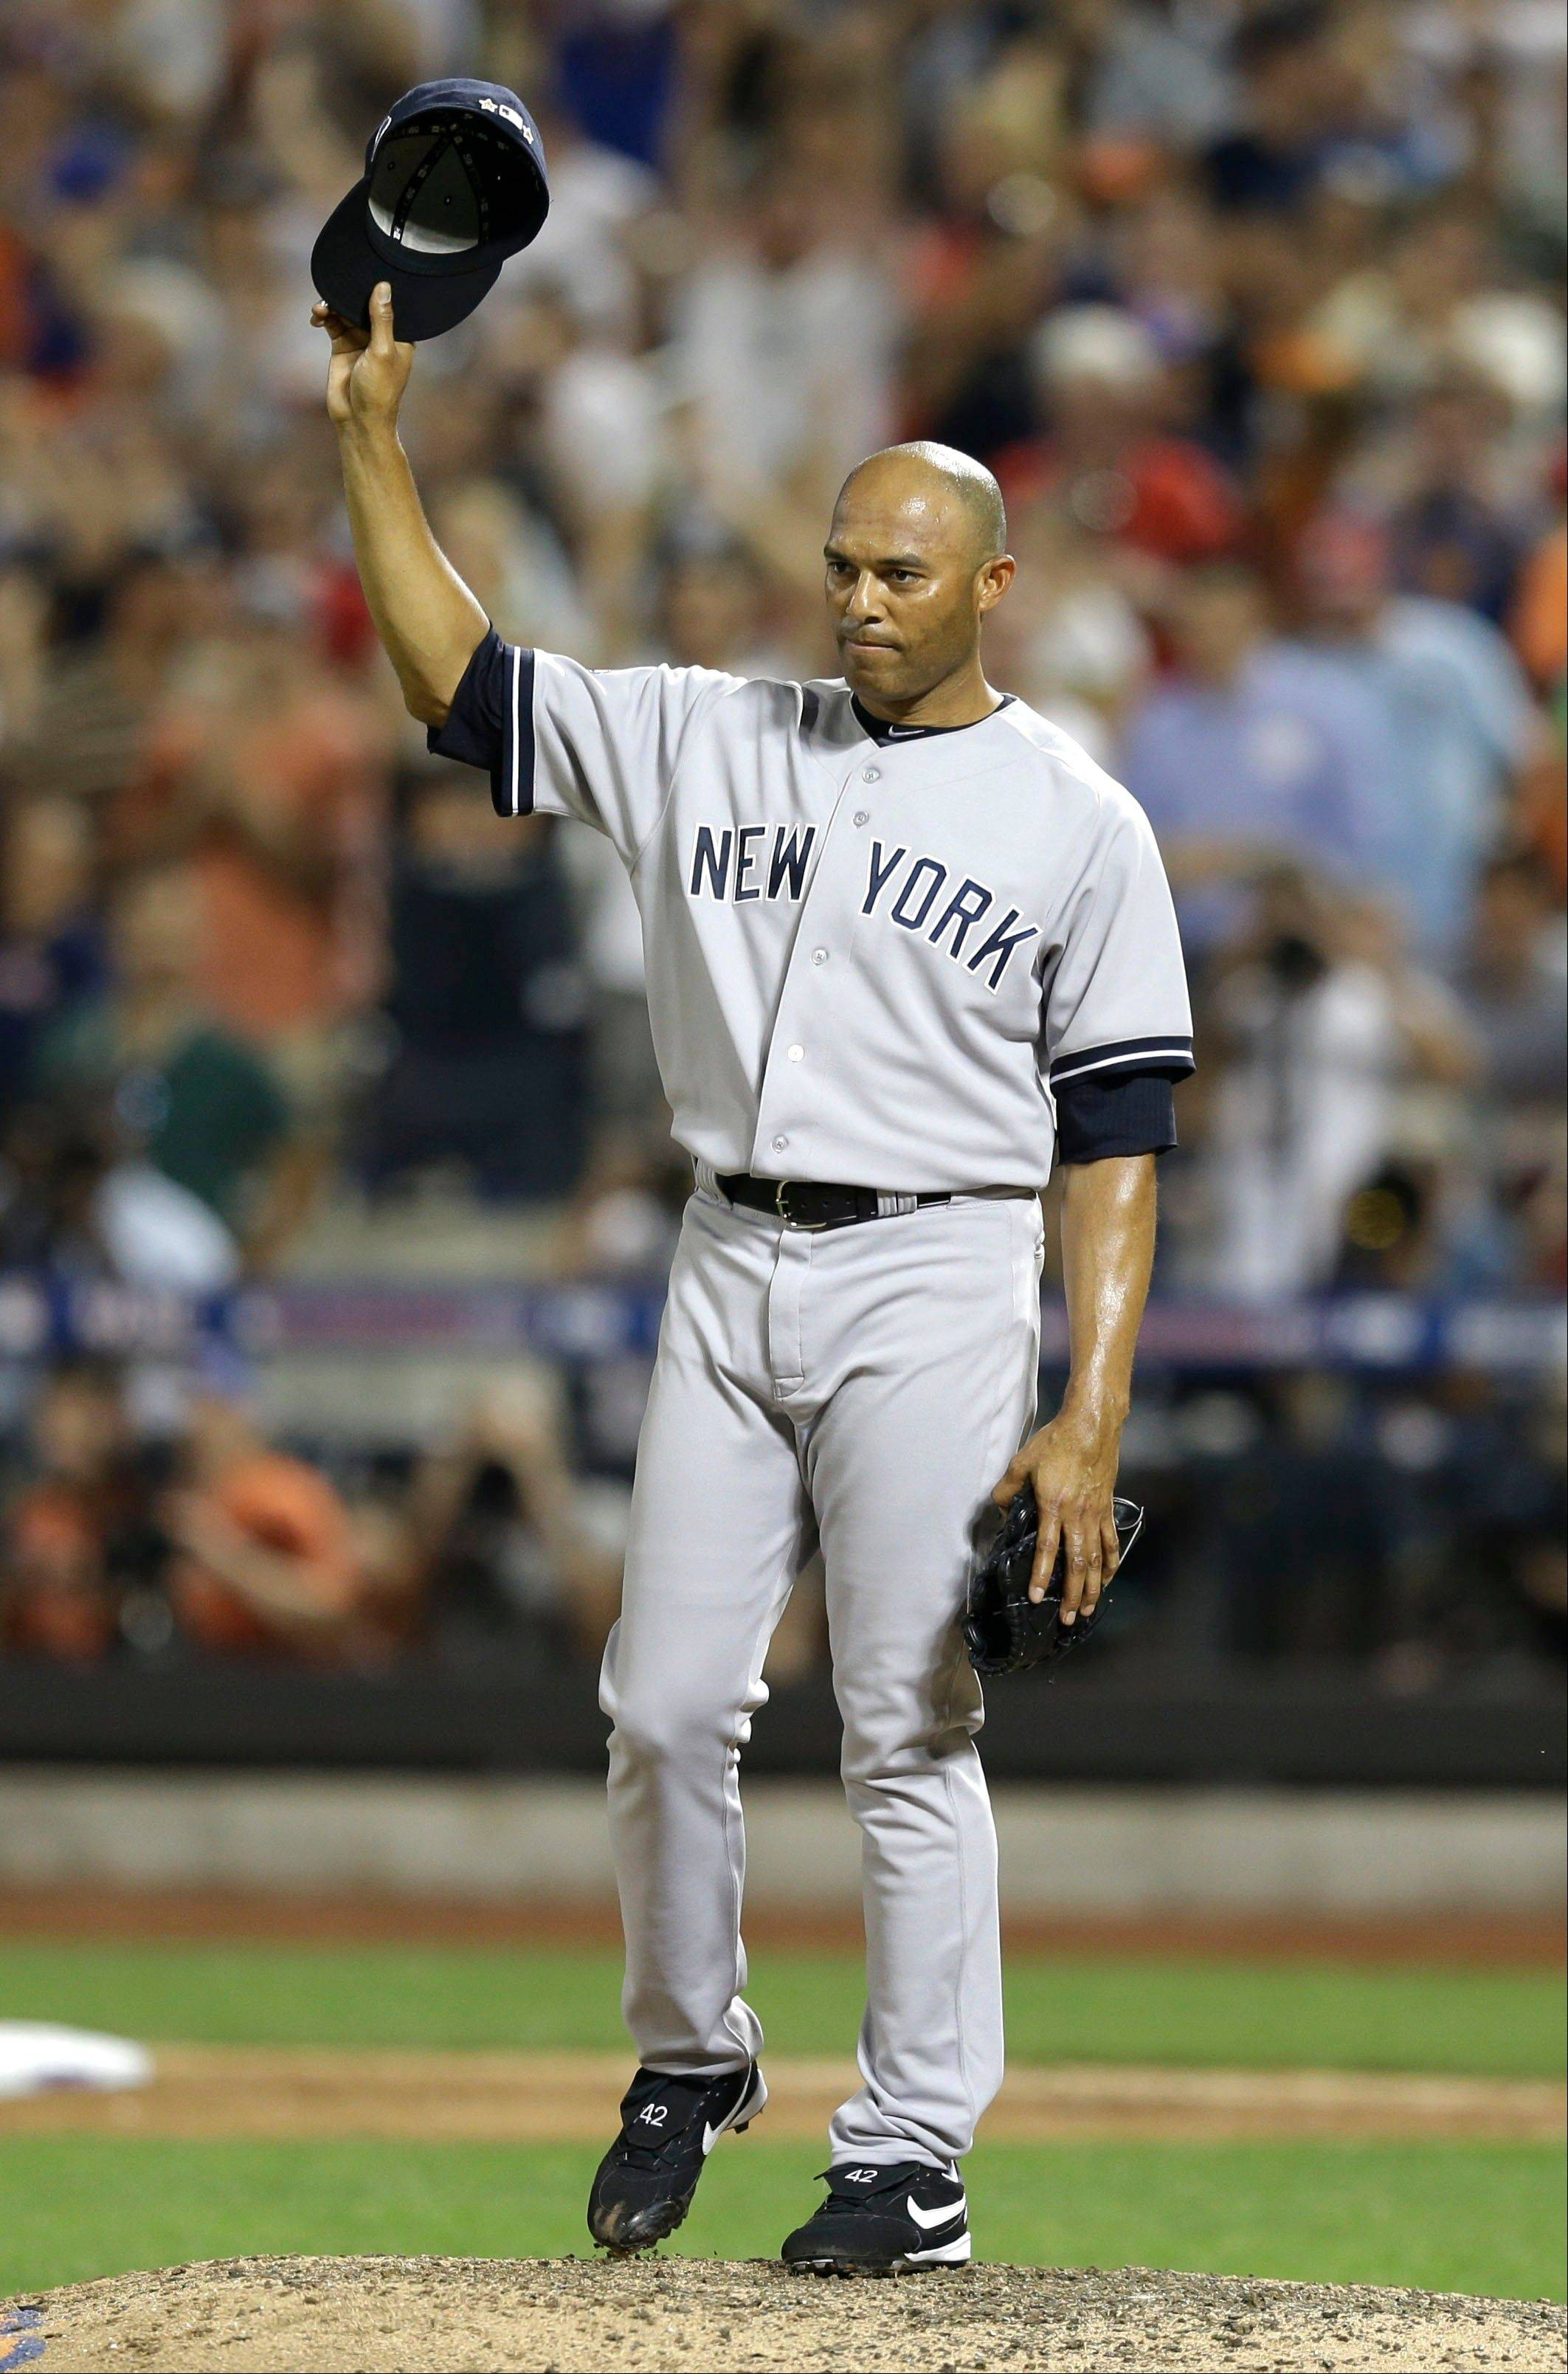 American League's Mariano Rivera of the New York Yankees acknowledges a standing ovation during the MLB All-Star baseball game Tuesday night in New York. Rivera, 43, who is retiring at the end of the season, pitched a perfect eighth inning to help the American League win 3-0.